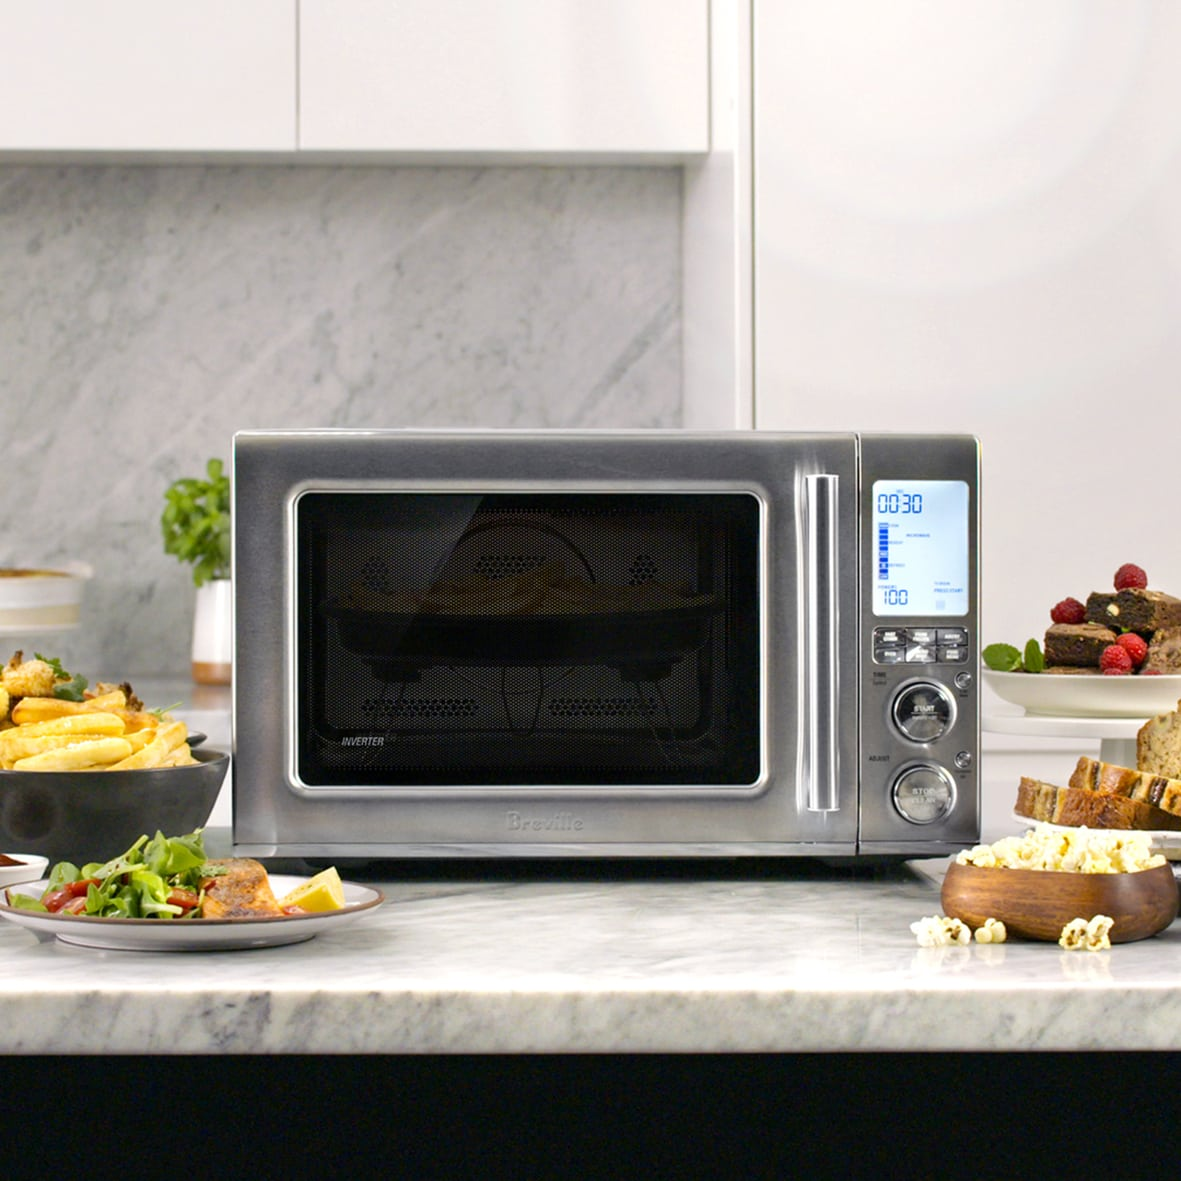 Breville Combi Wave microwave